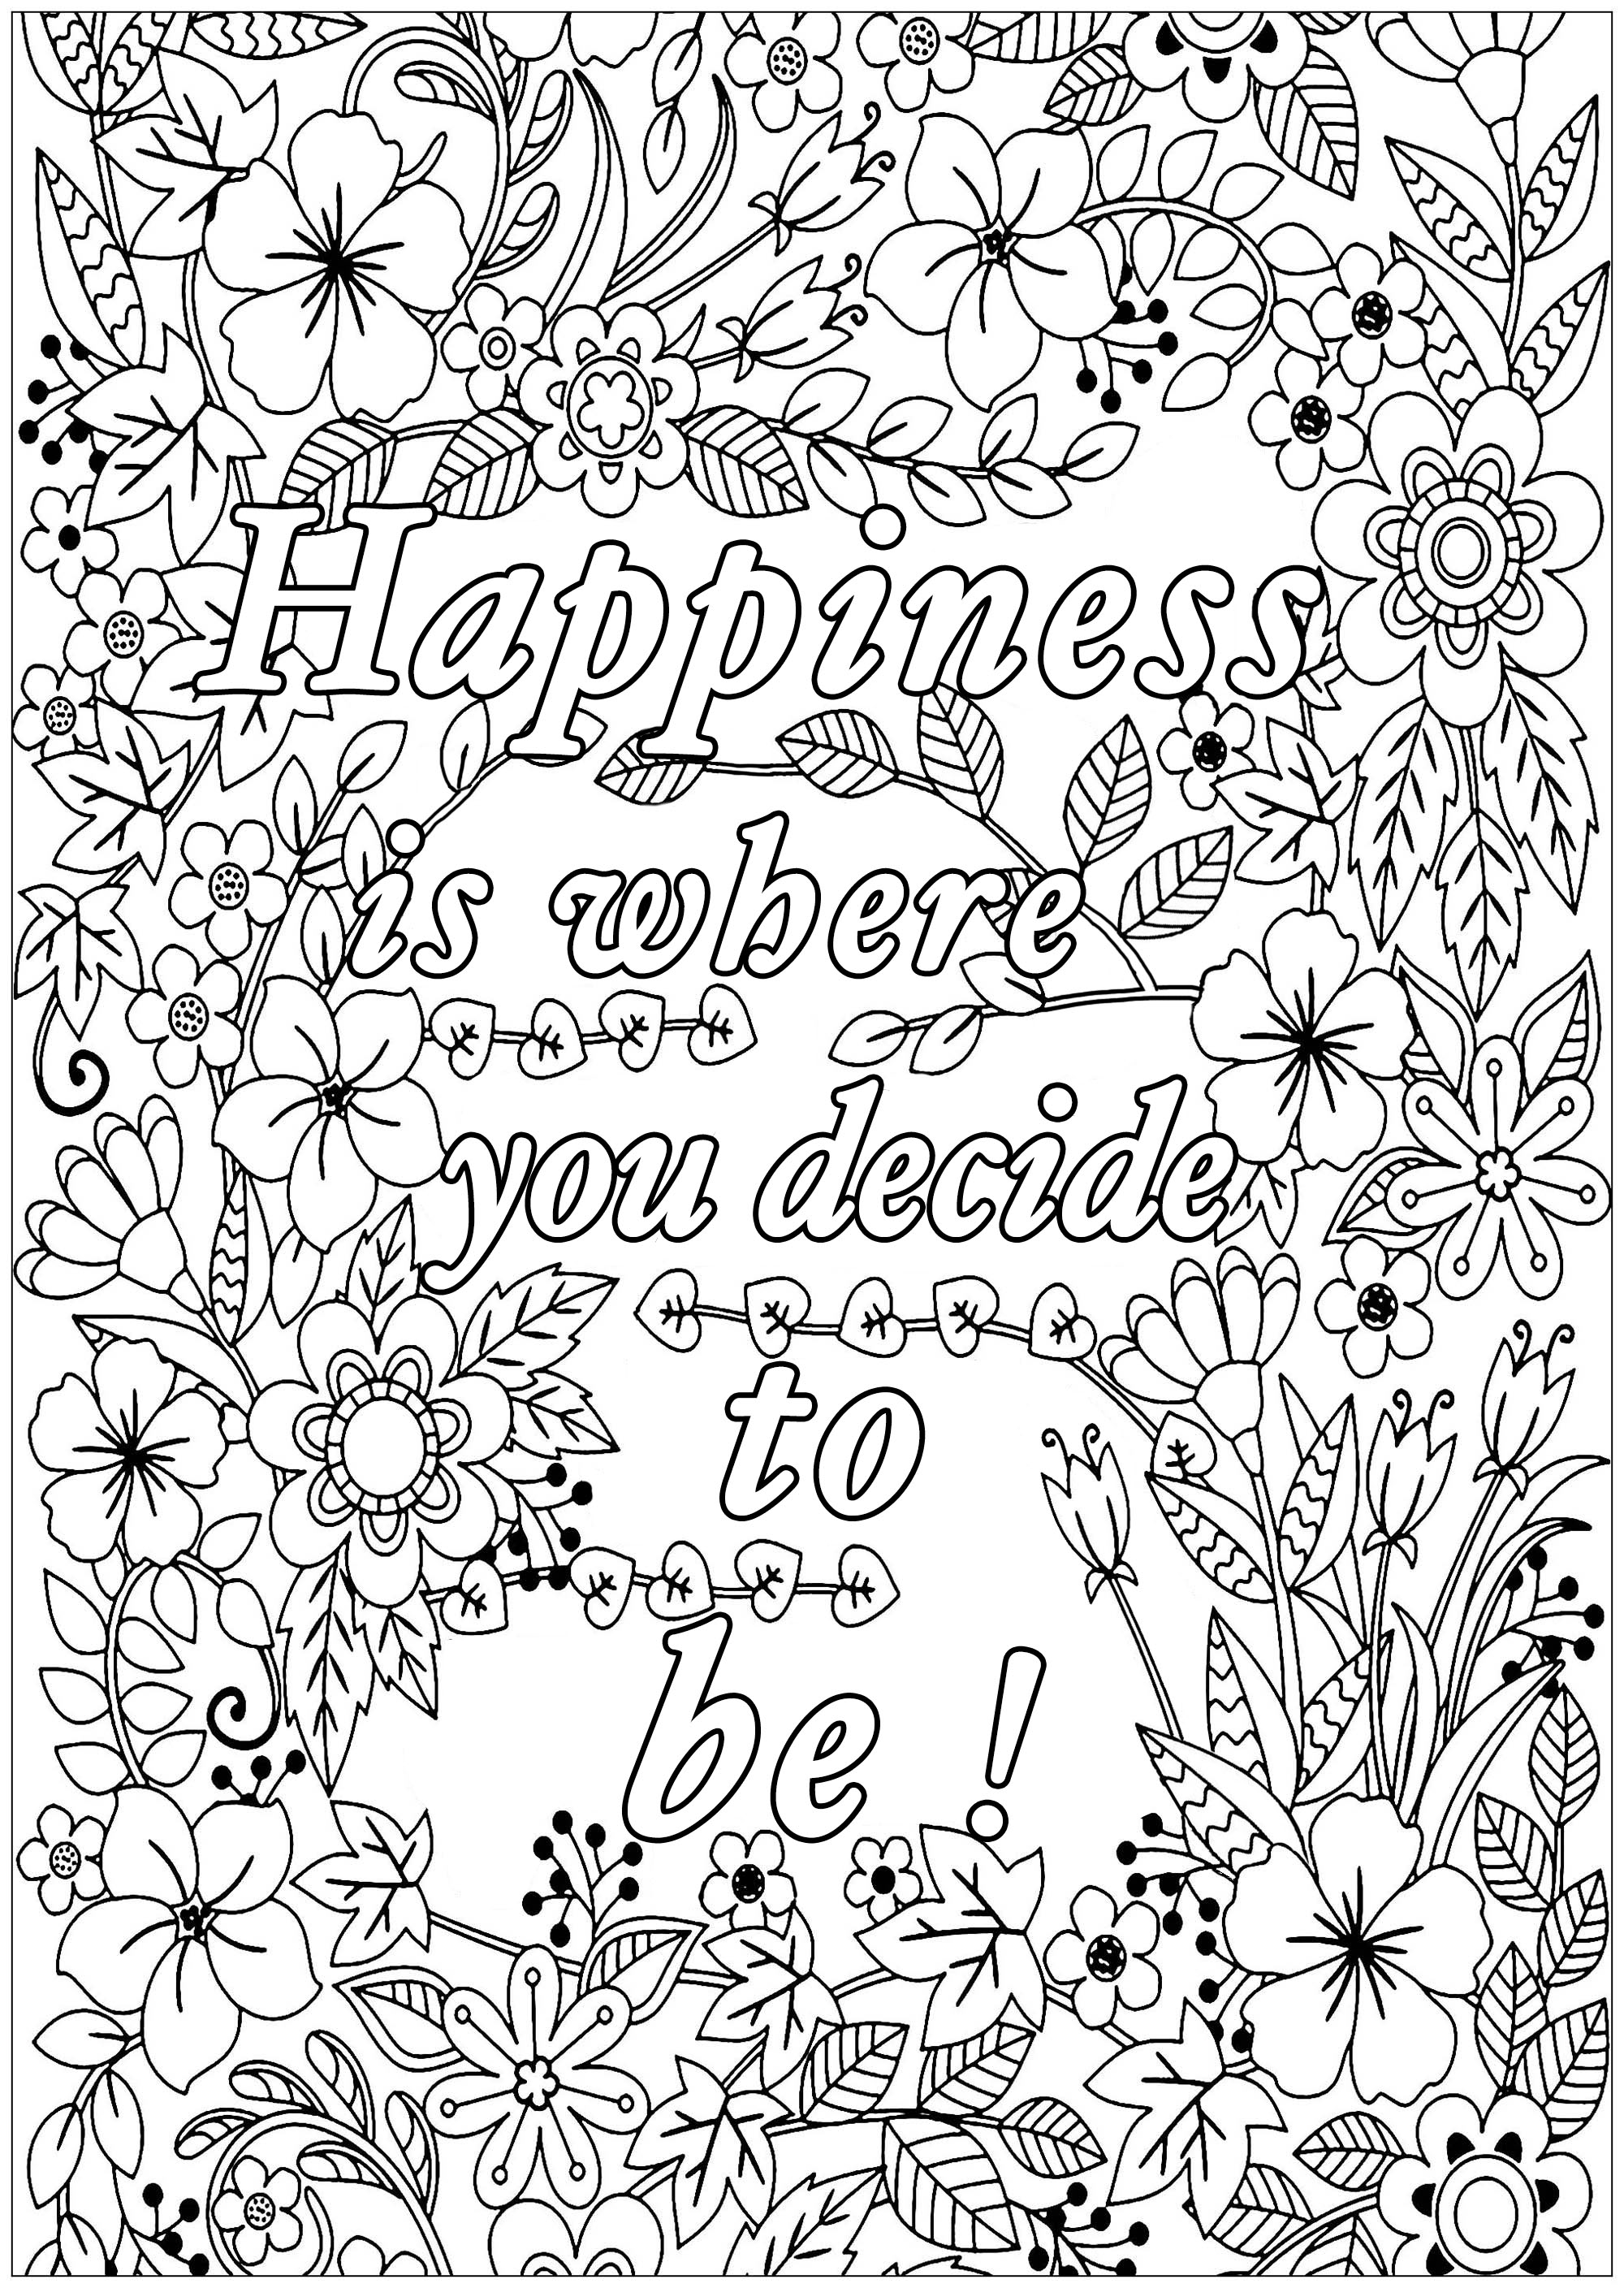 positive quotes coloring sheets positive quotes coloring sheets quotesgram coloring sheets positive quotes